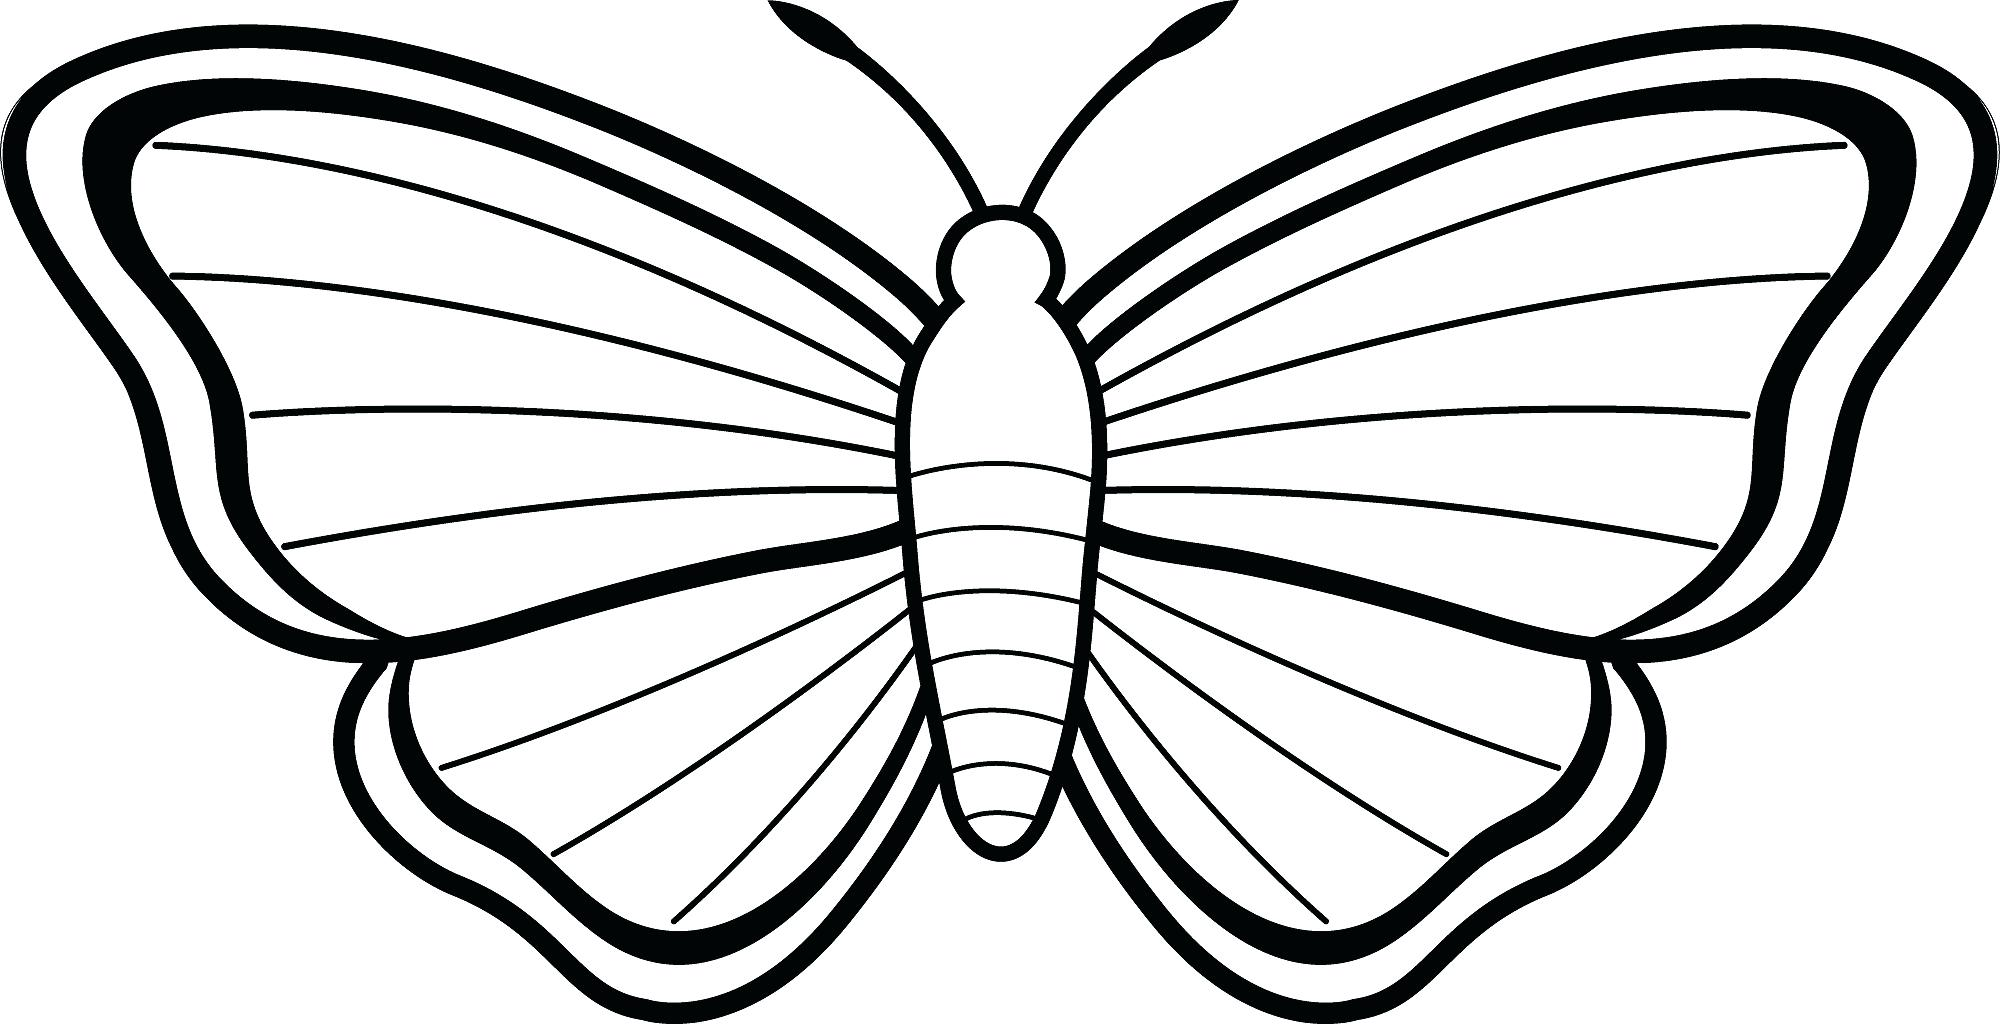 2000x1024 Butterflies And Flowers Coloring Pages For Adults Fantastic Blank